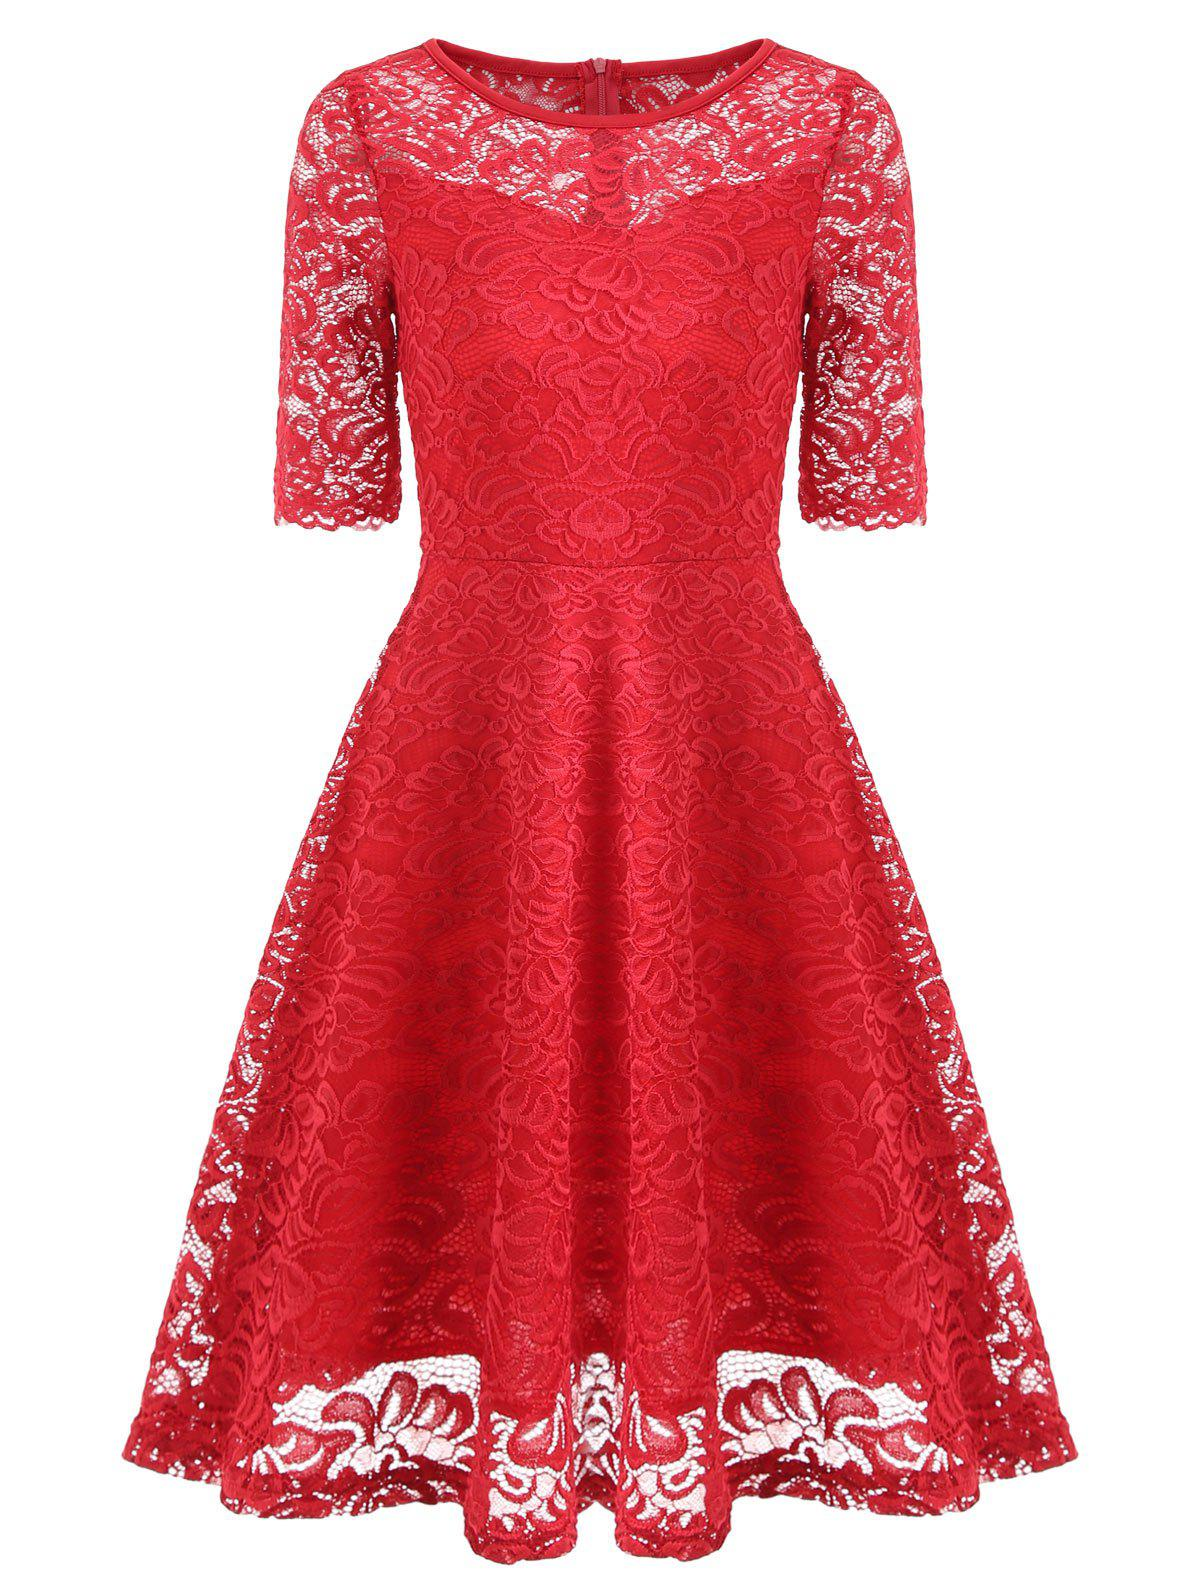 Unique Vintage Lace Fit and Flare Dress